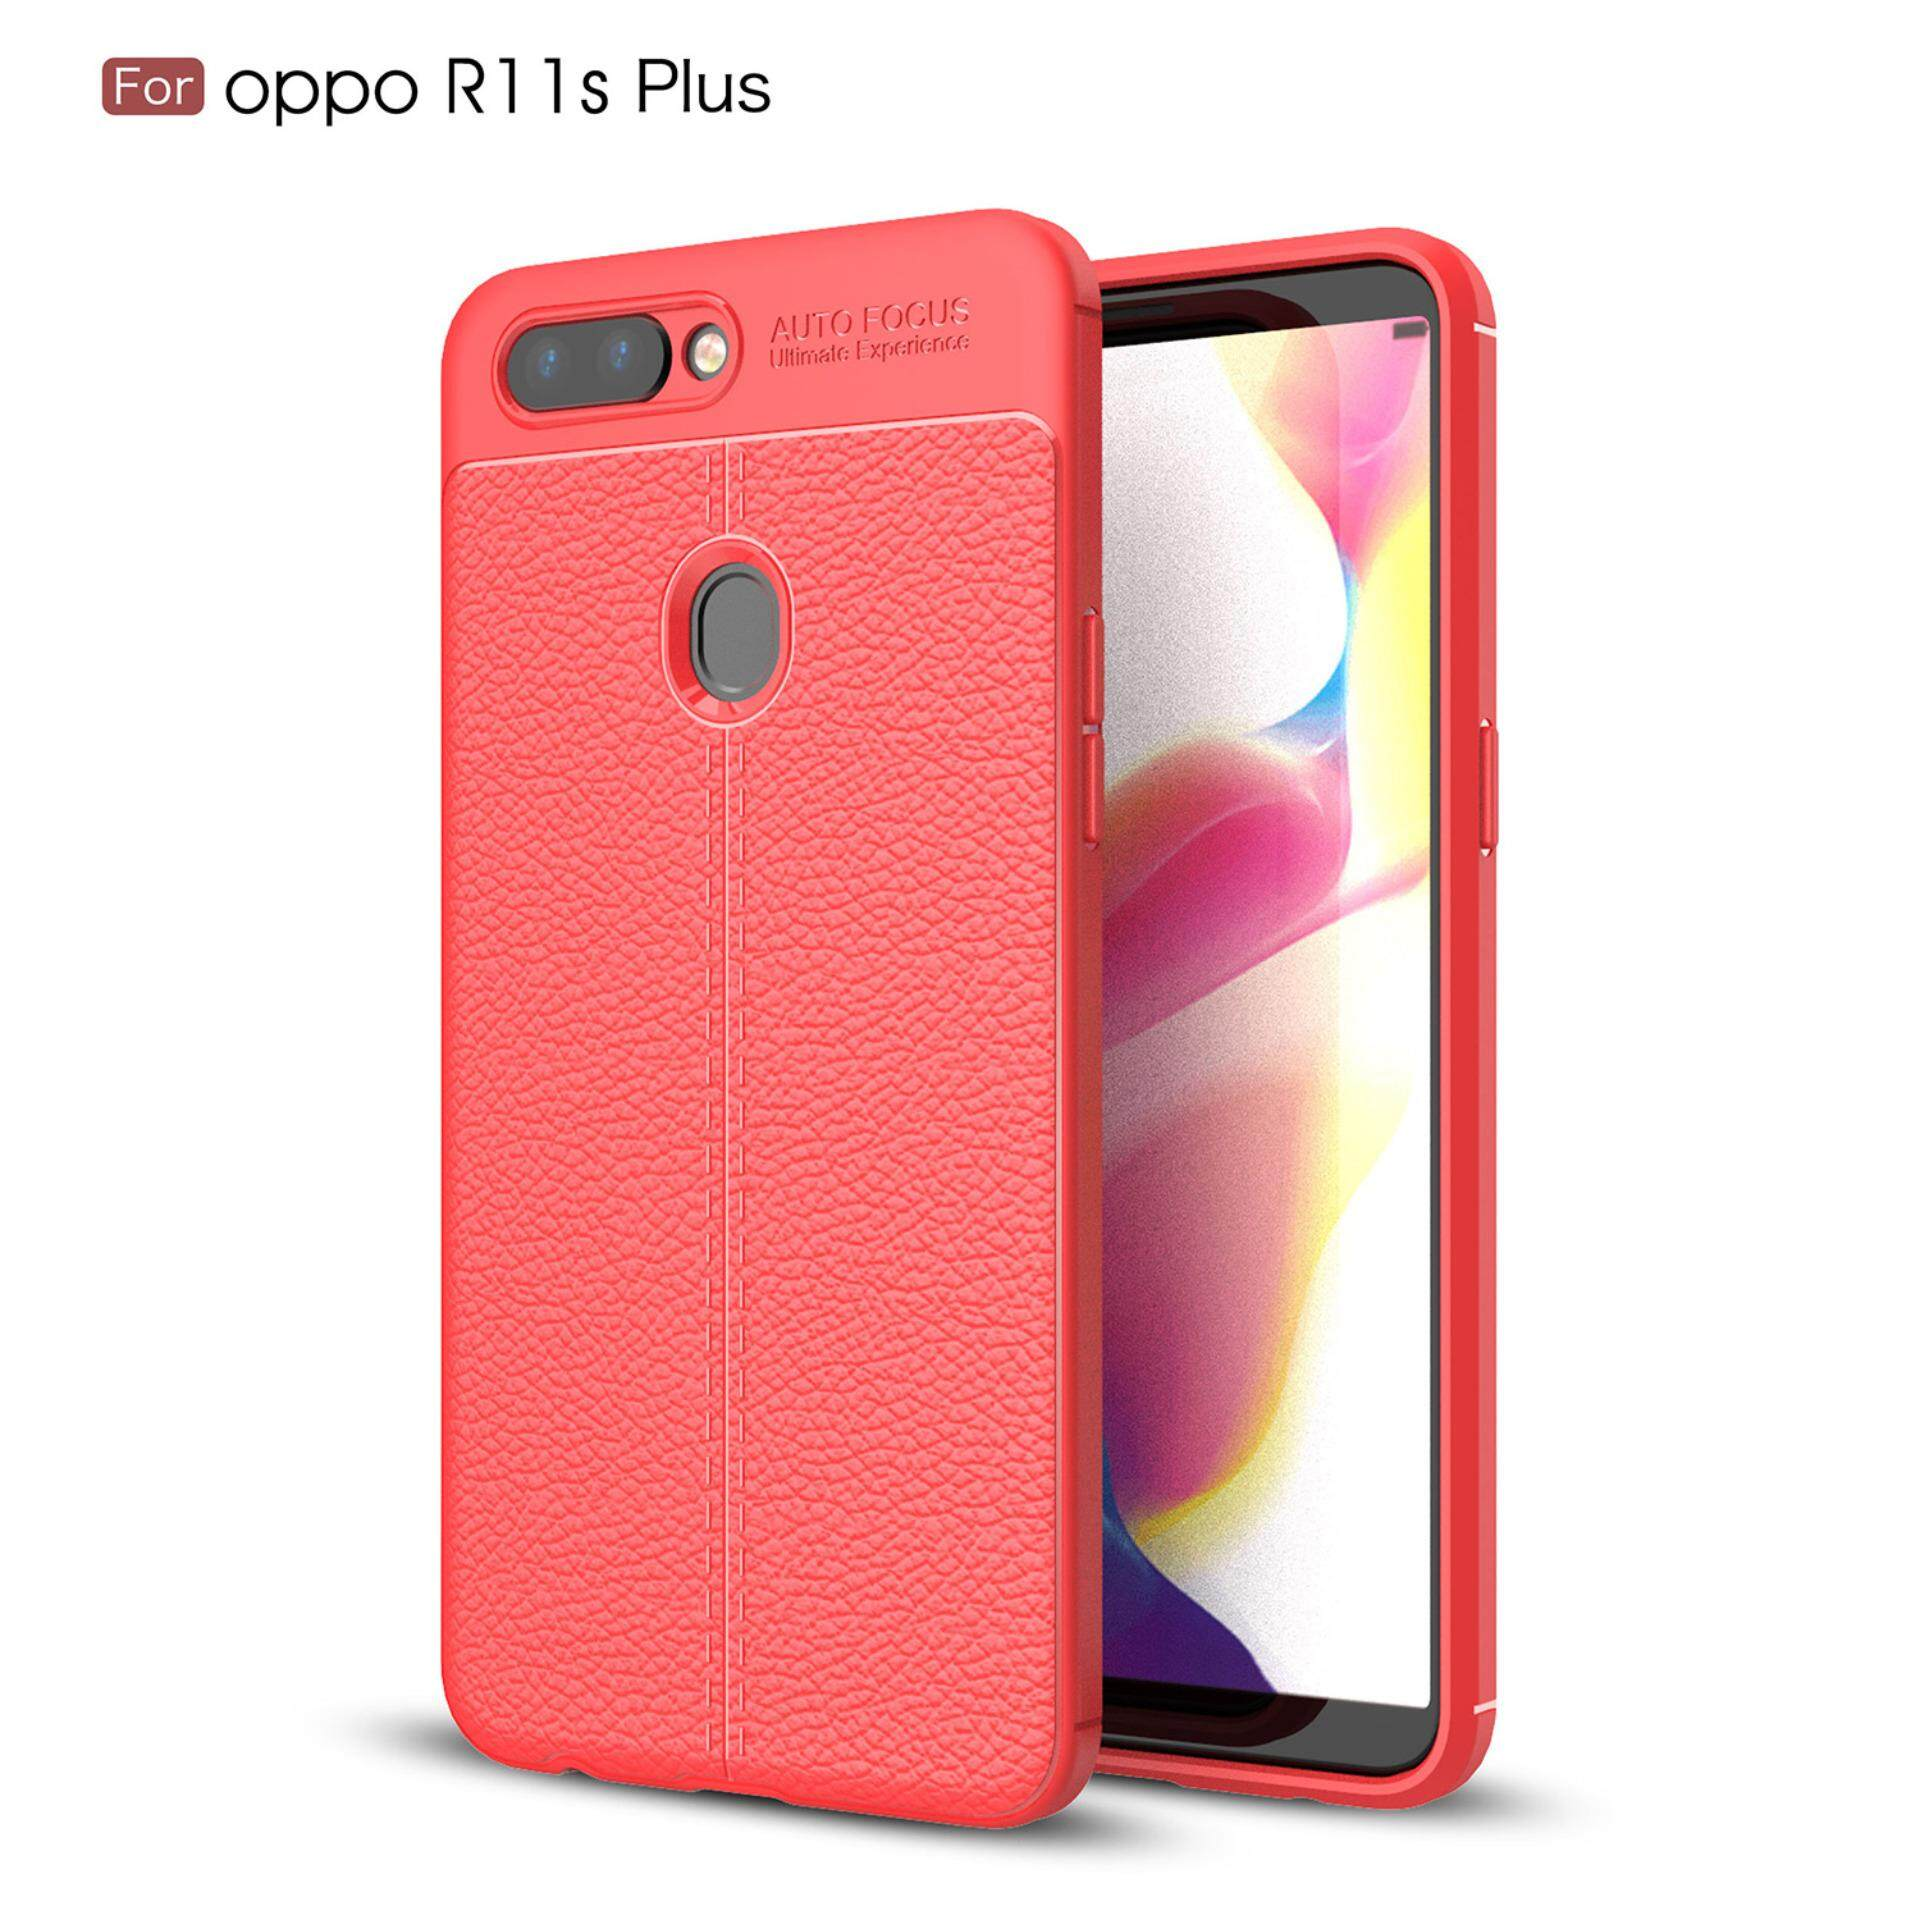 OPPO R11S Plus Case, Kunpon 3D Skin Painting Non Slip Armor Shock Absorption Carbon Fiber Texture Soft TPU Leather Full Protection Phone Case Cover Casing for OPPO R11S Plus - Red - intl